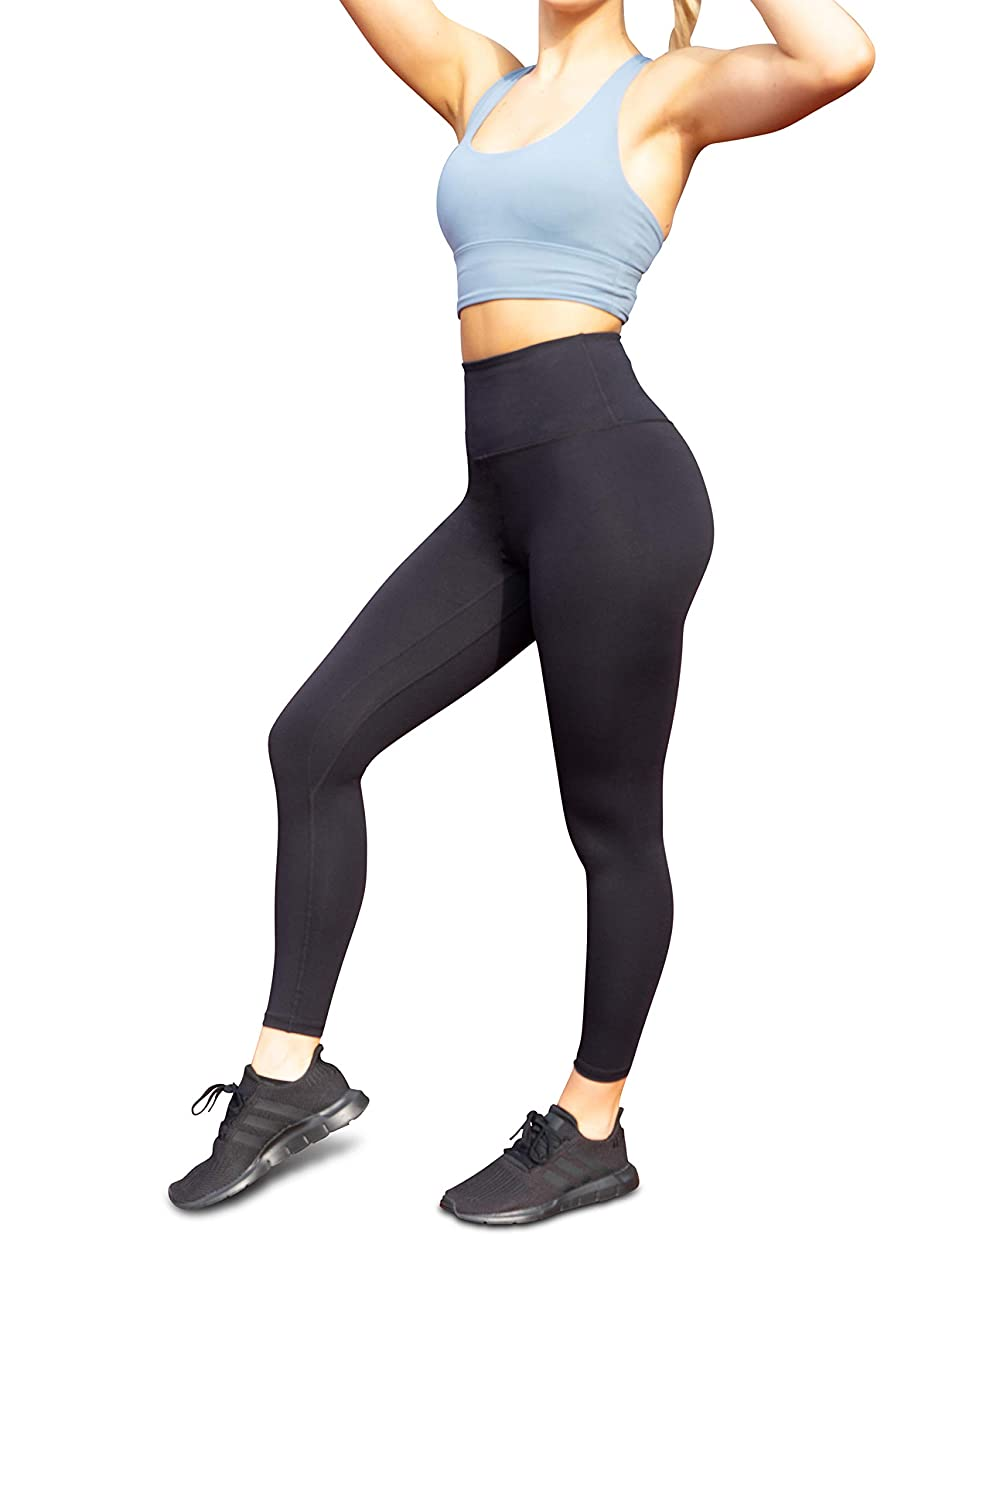 Luna Yoga Pants for Women, Workout Leggings, High Waisted Leggings, Workout Clothes